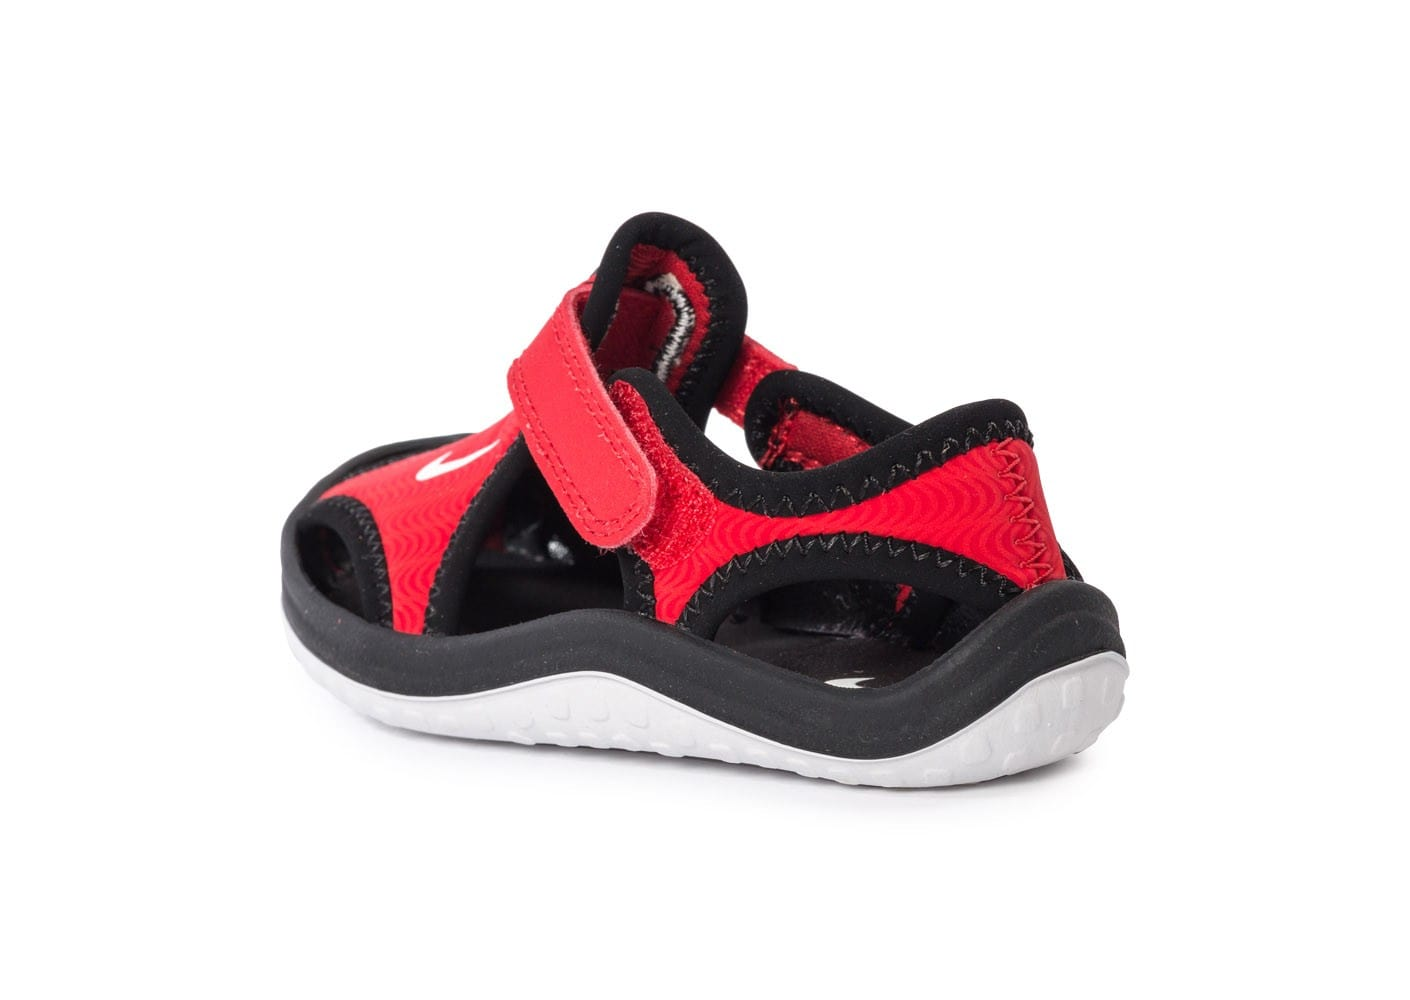 factory authentic 60d7e 17642 ... chaussures nike sunray protect bebe rouge vue arriere